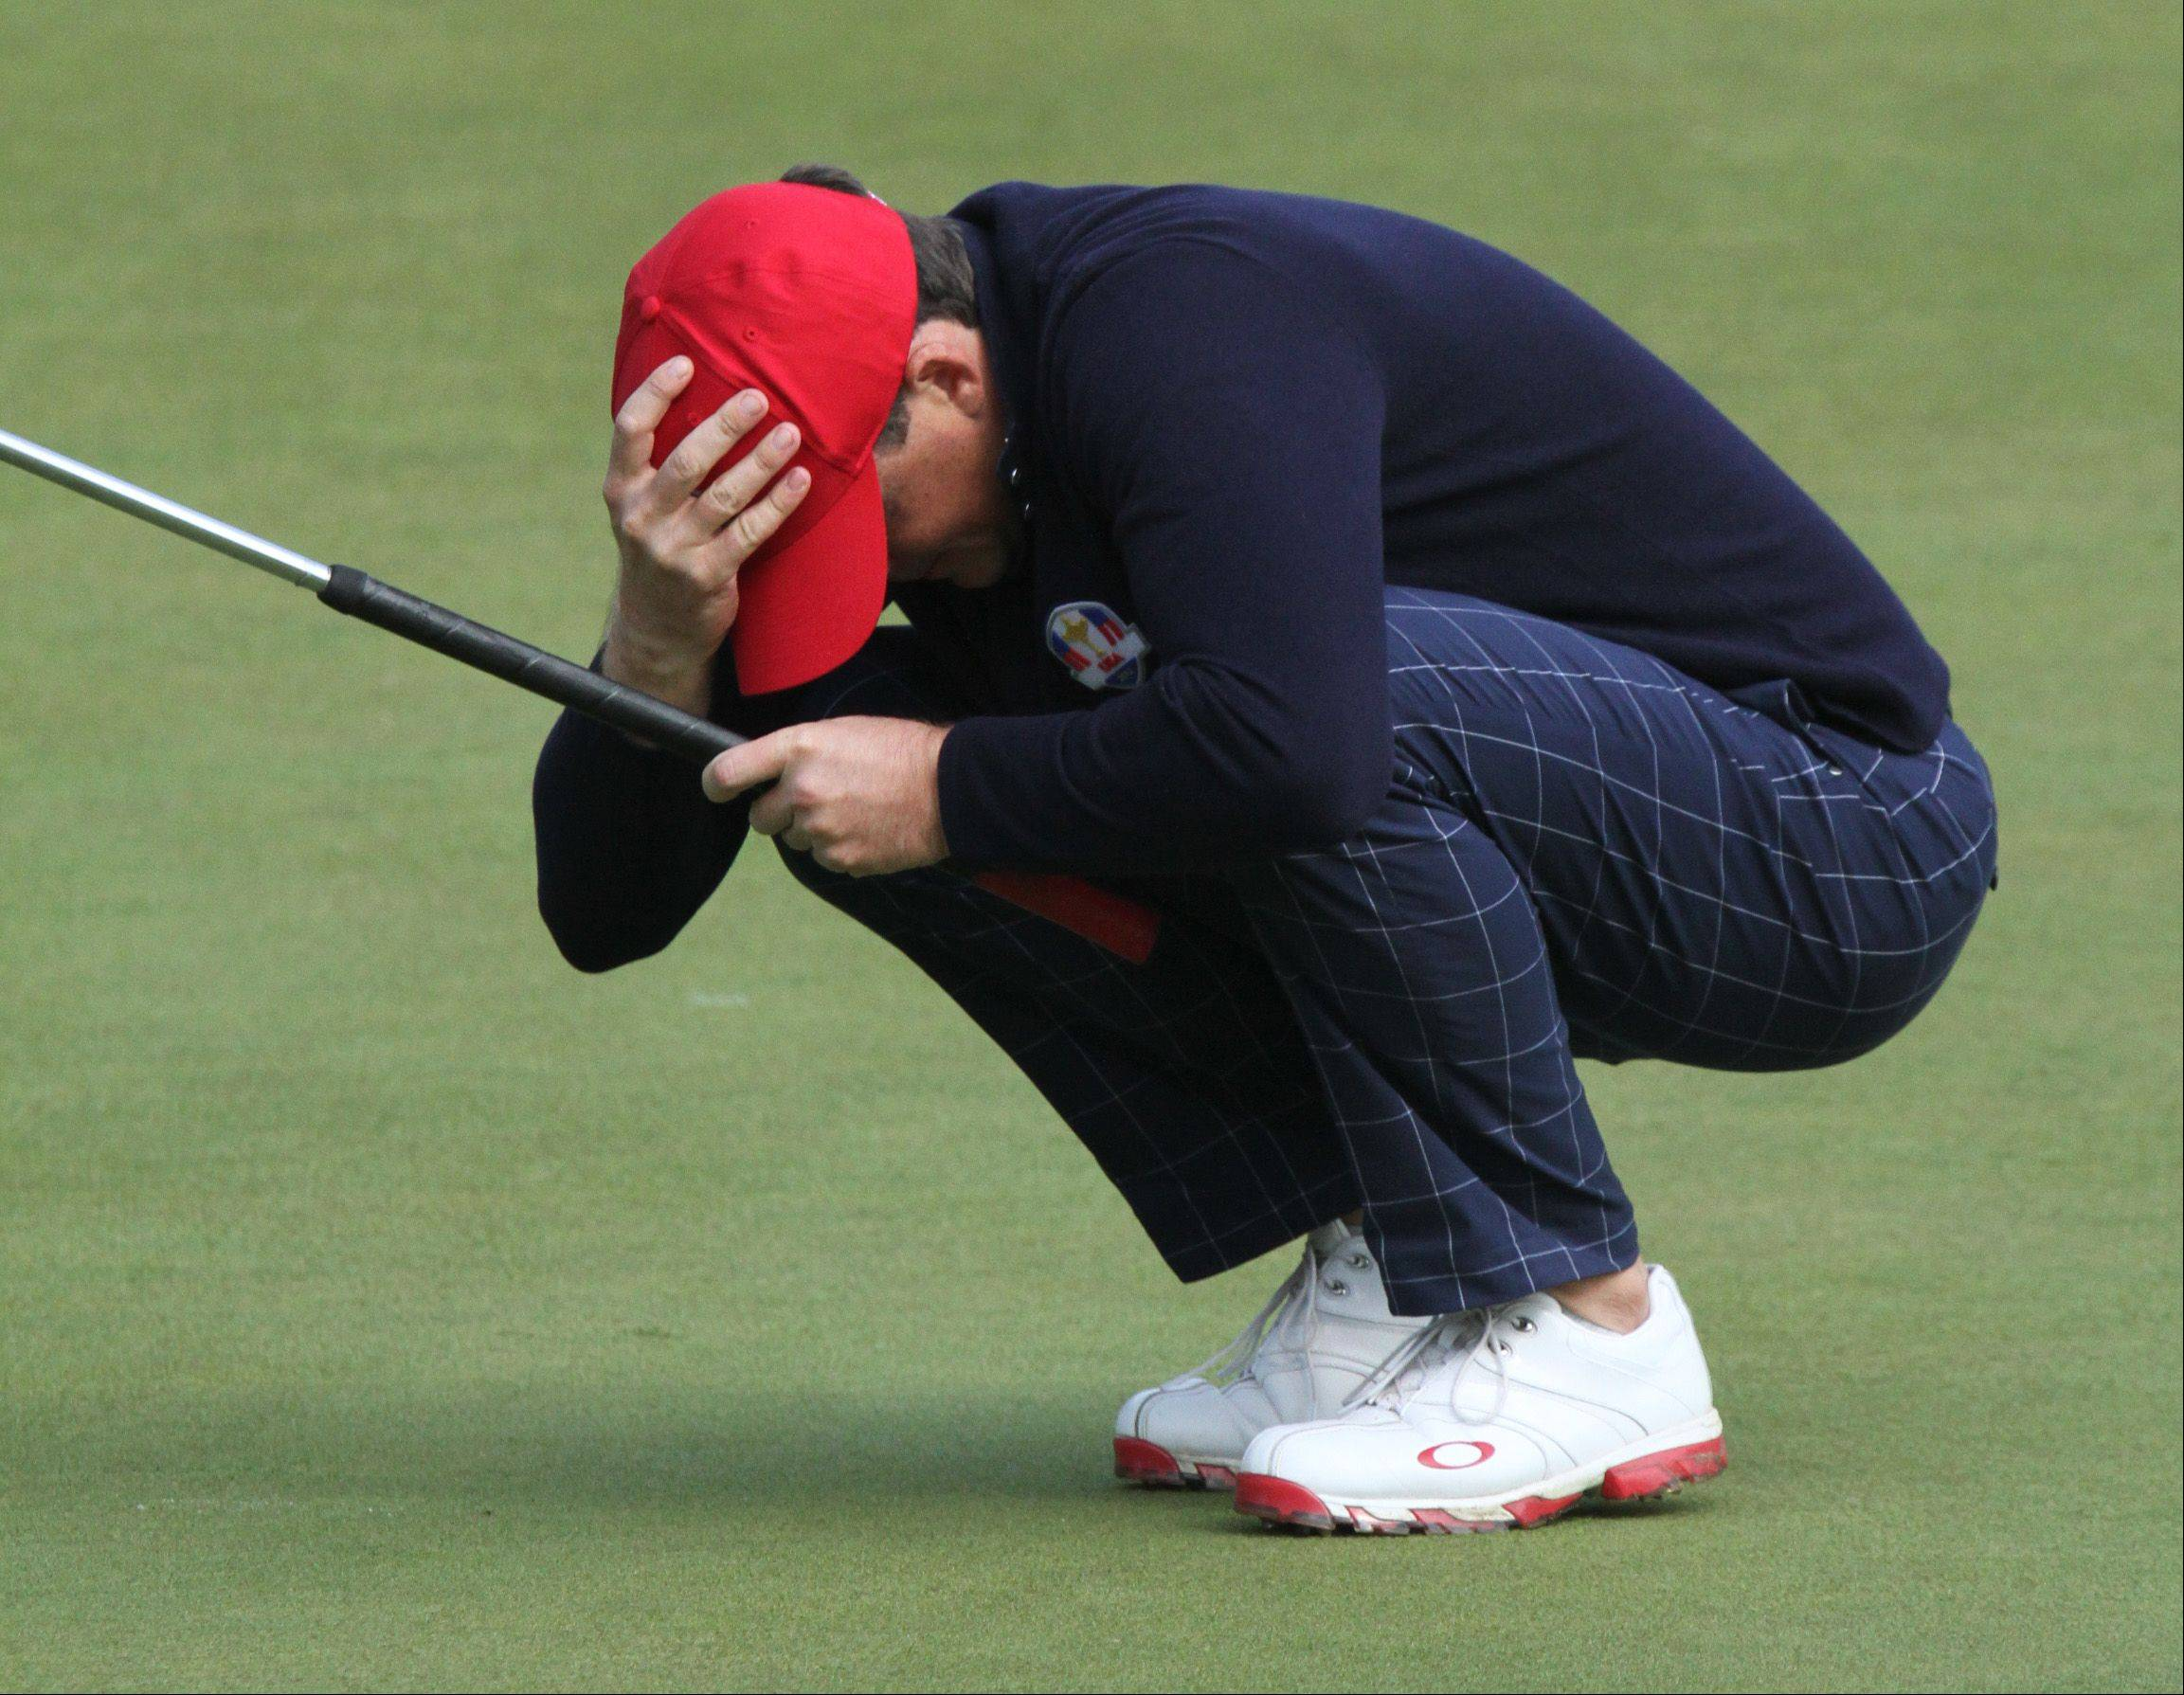 USA rookie Keegan Bradley reacts to missing a putt on the 14th hole, but he didn't miss much else on the day as he earned 2 points with partner Phil Mickelson in Friday's Ryder Cup at Medinah Country Club.